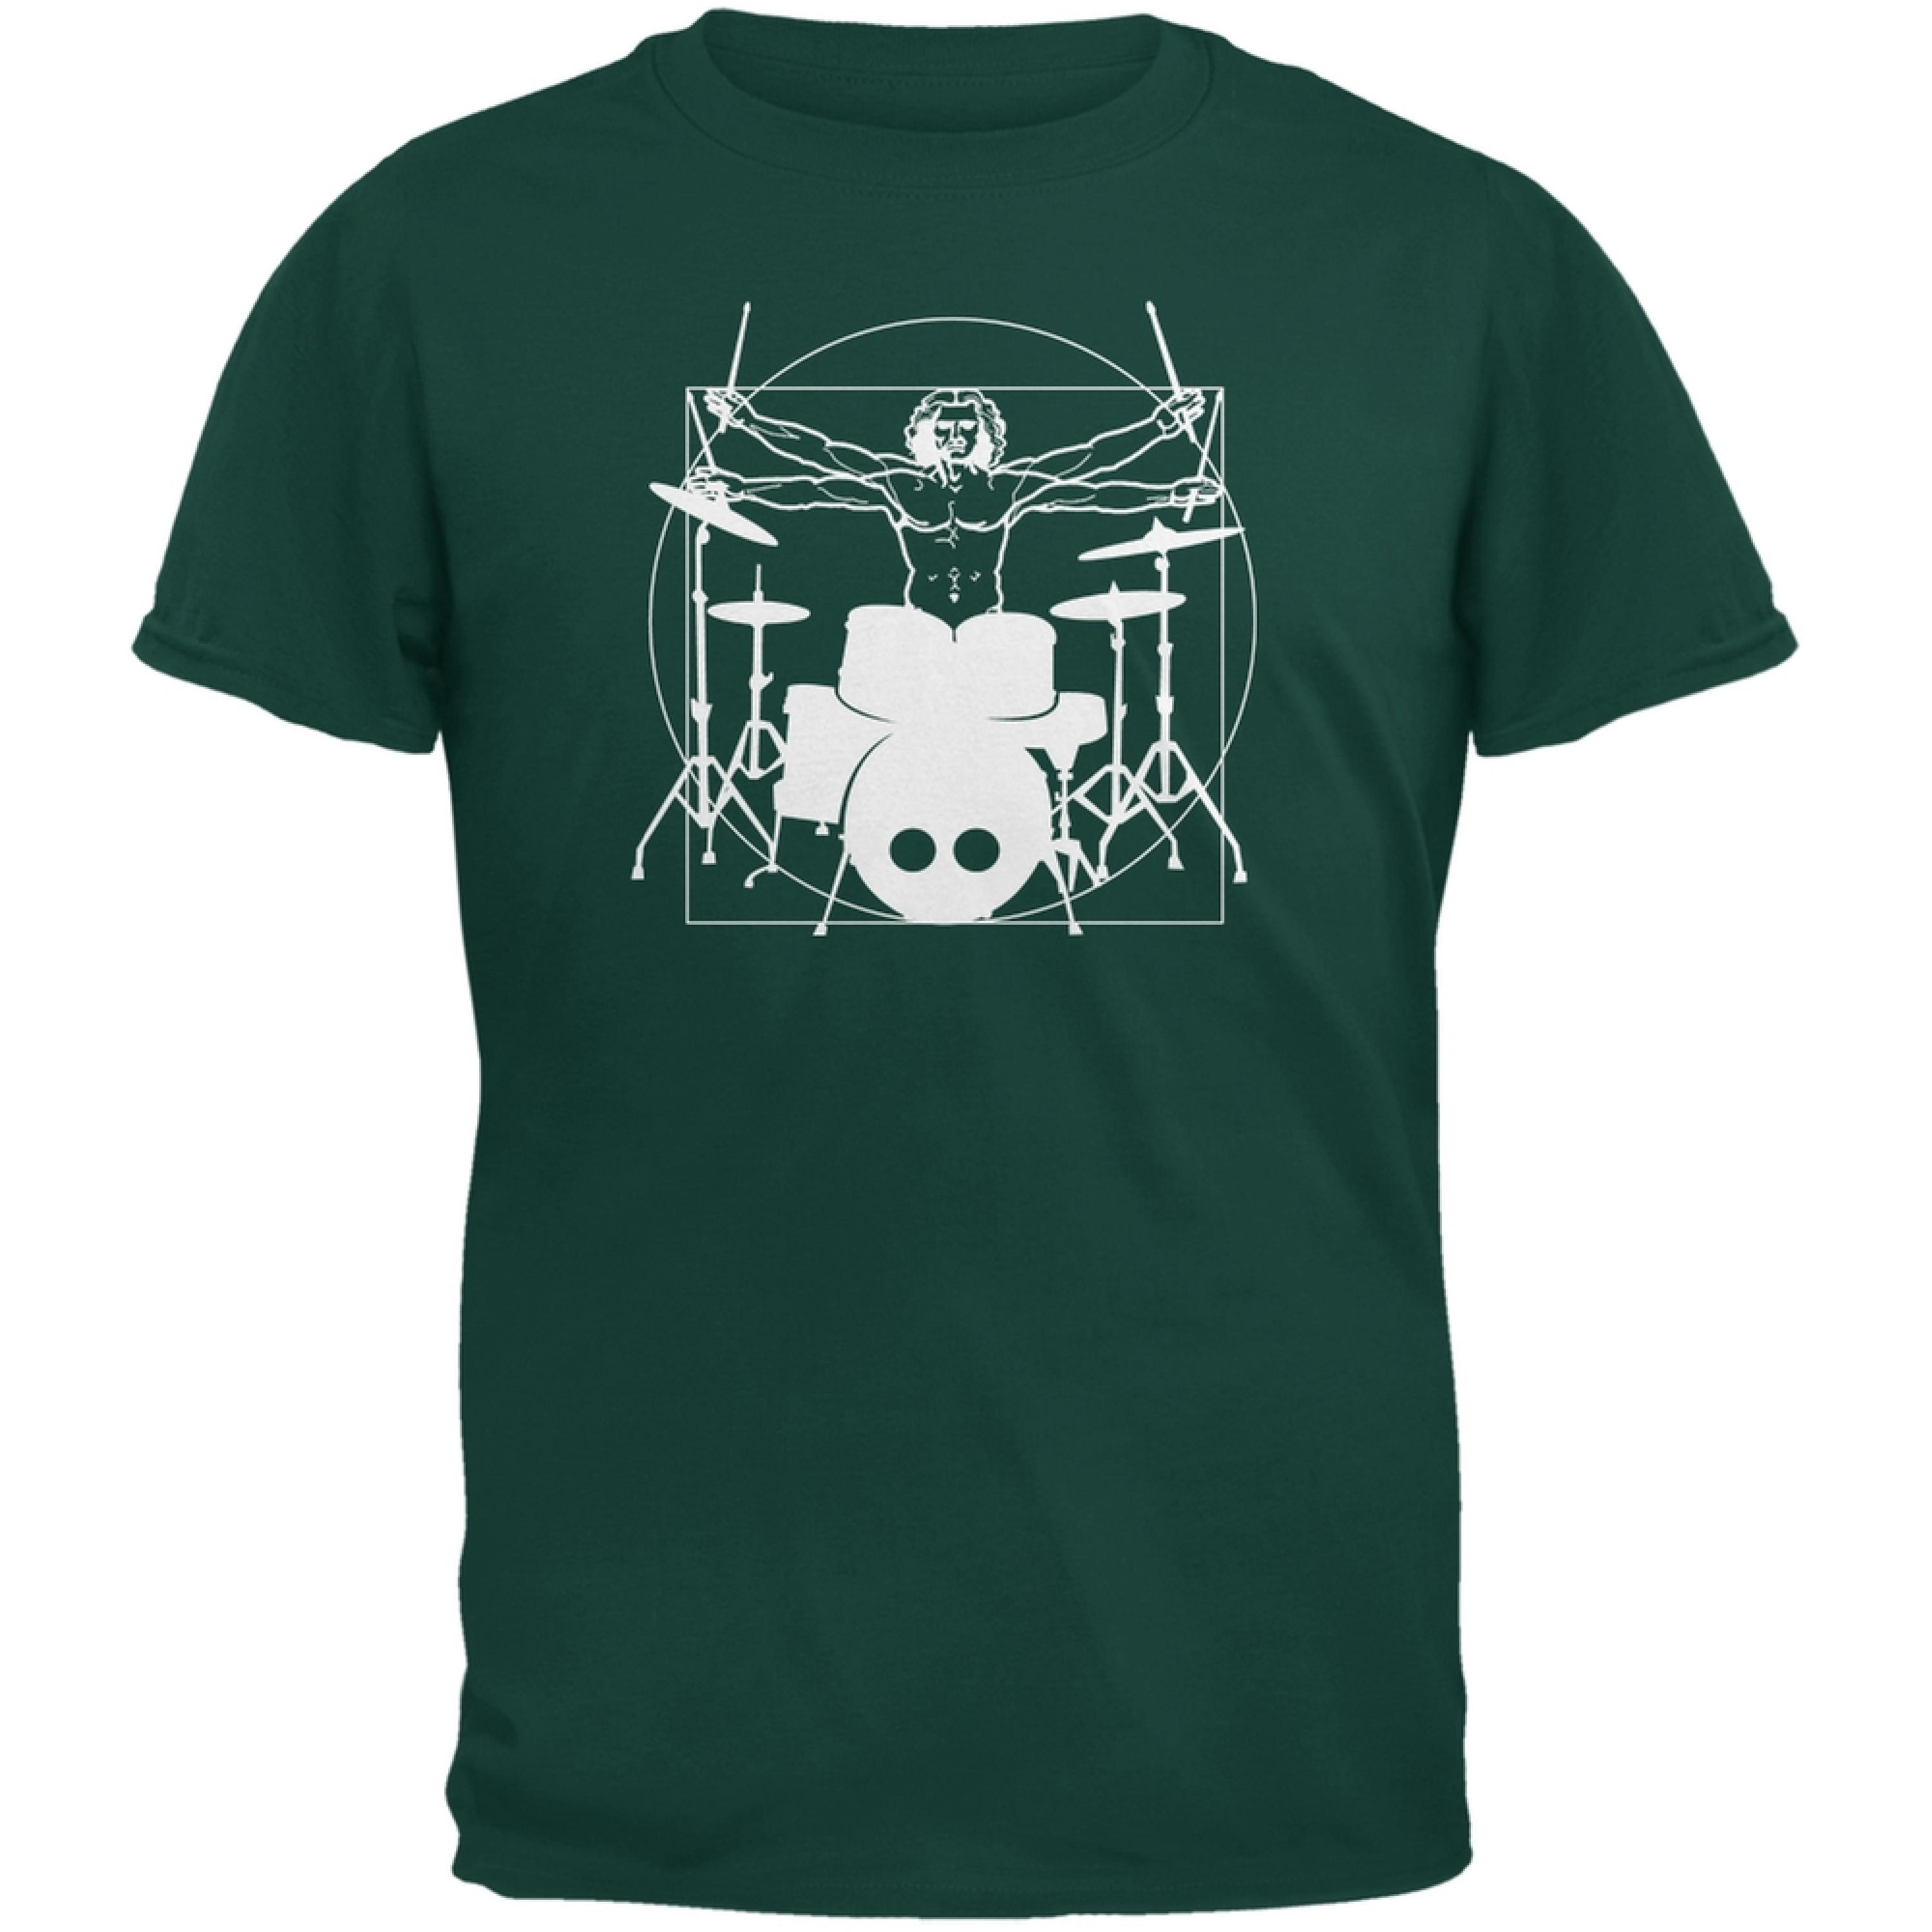 Vitruvian Man Drummer Forest Green Adult T-Shirt